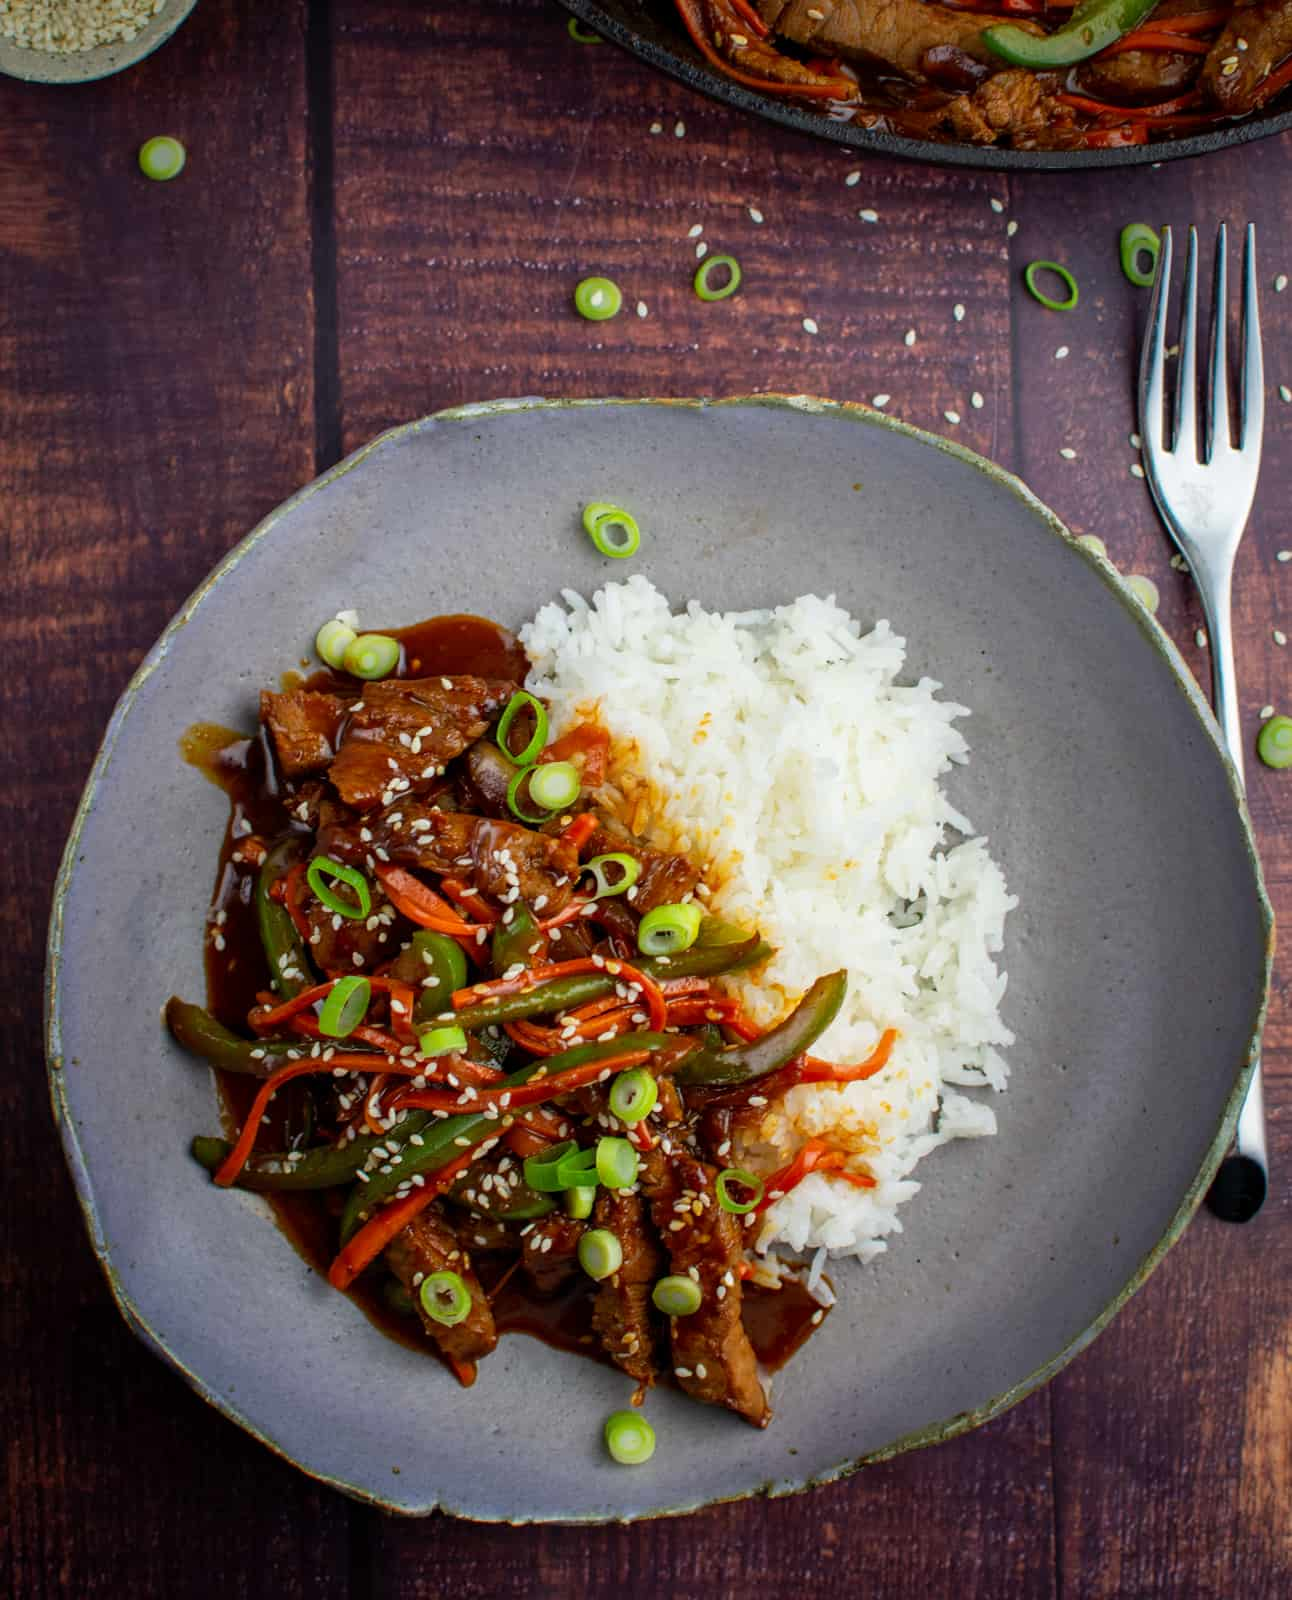 Korean beef stir-fry in a bowl with rice